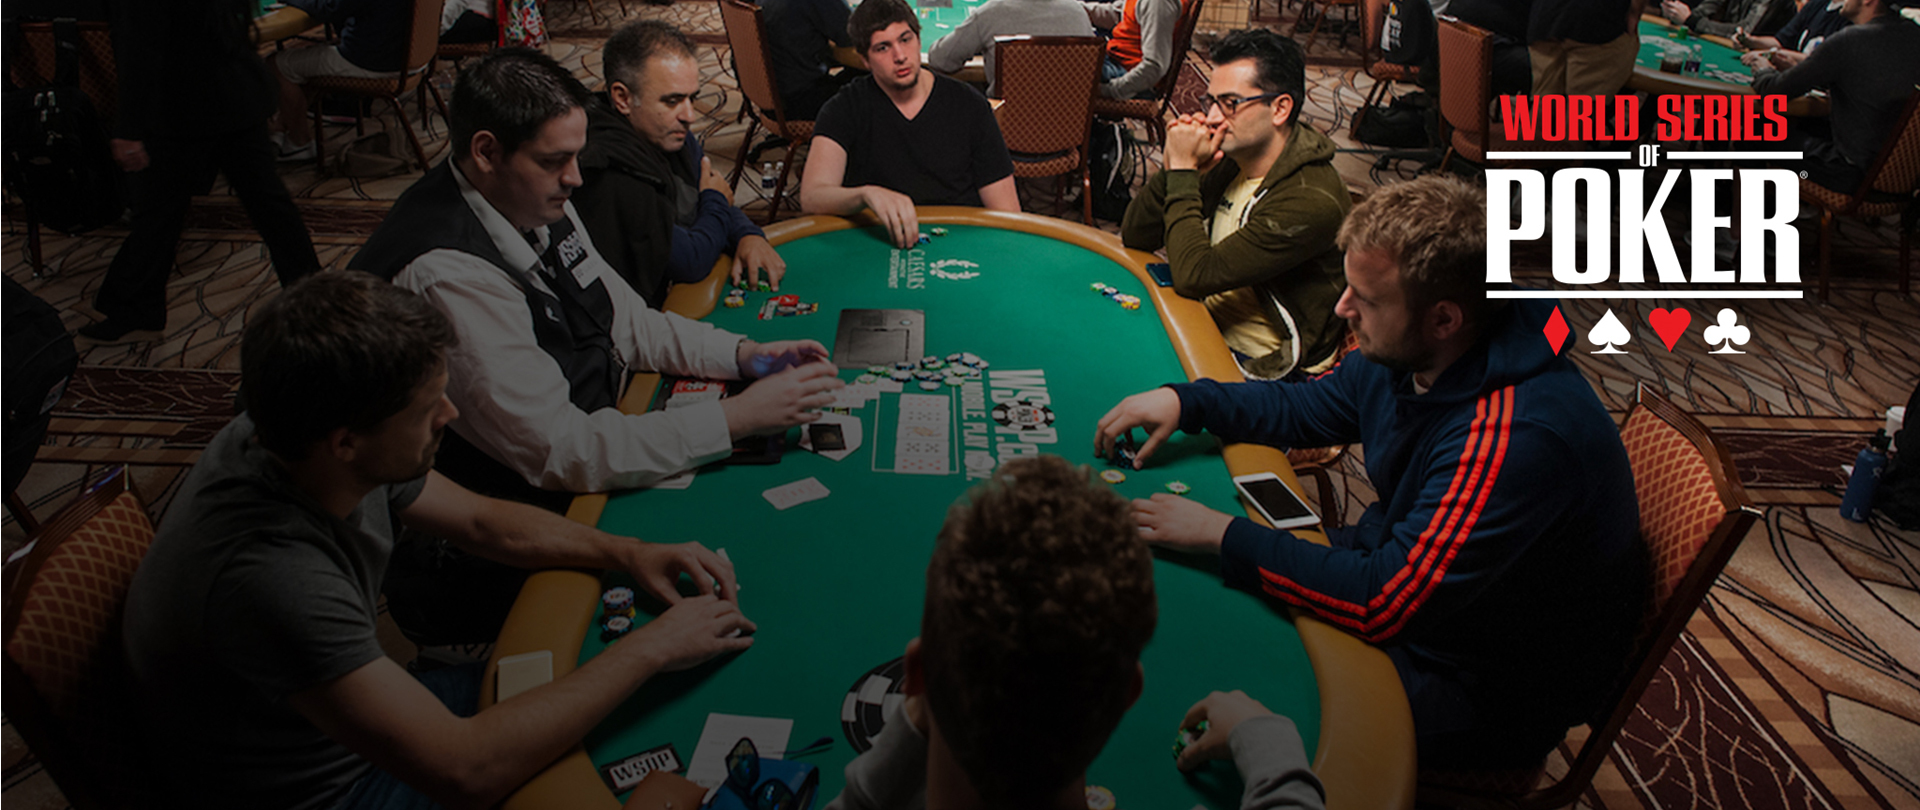 2017 WSOP $1,500 No Limit Hold'em